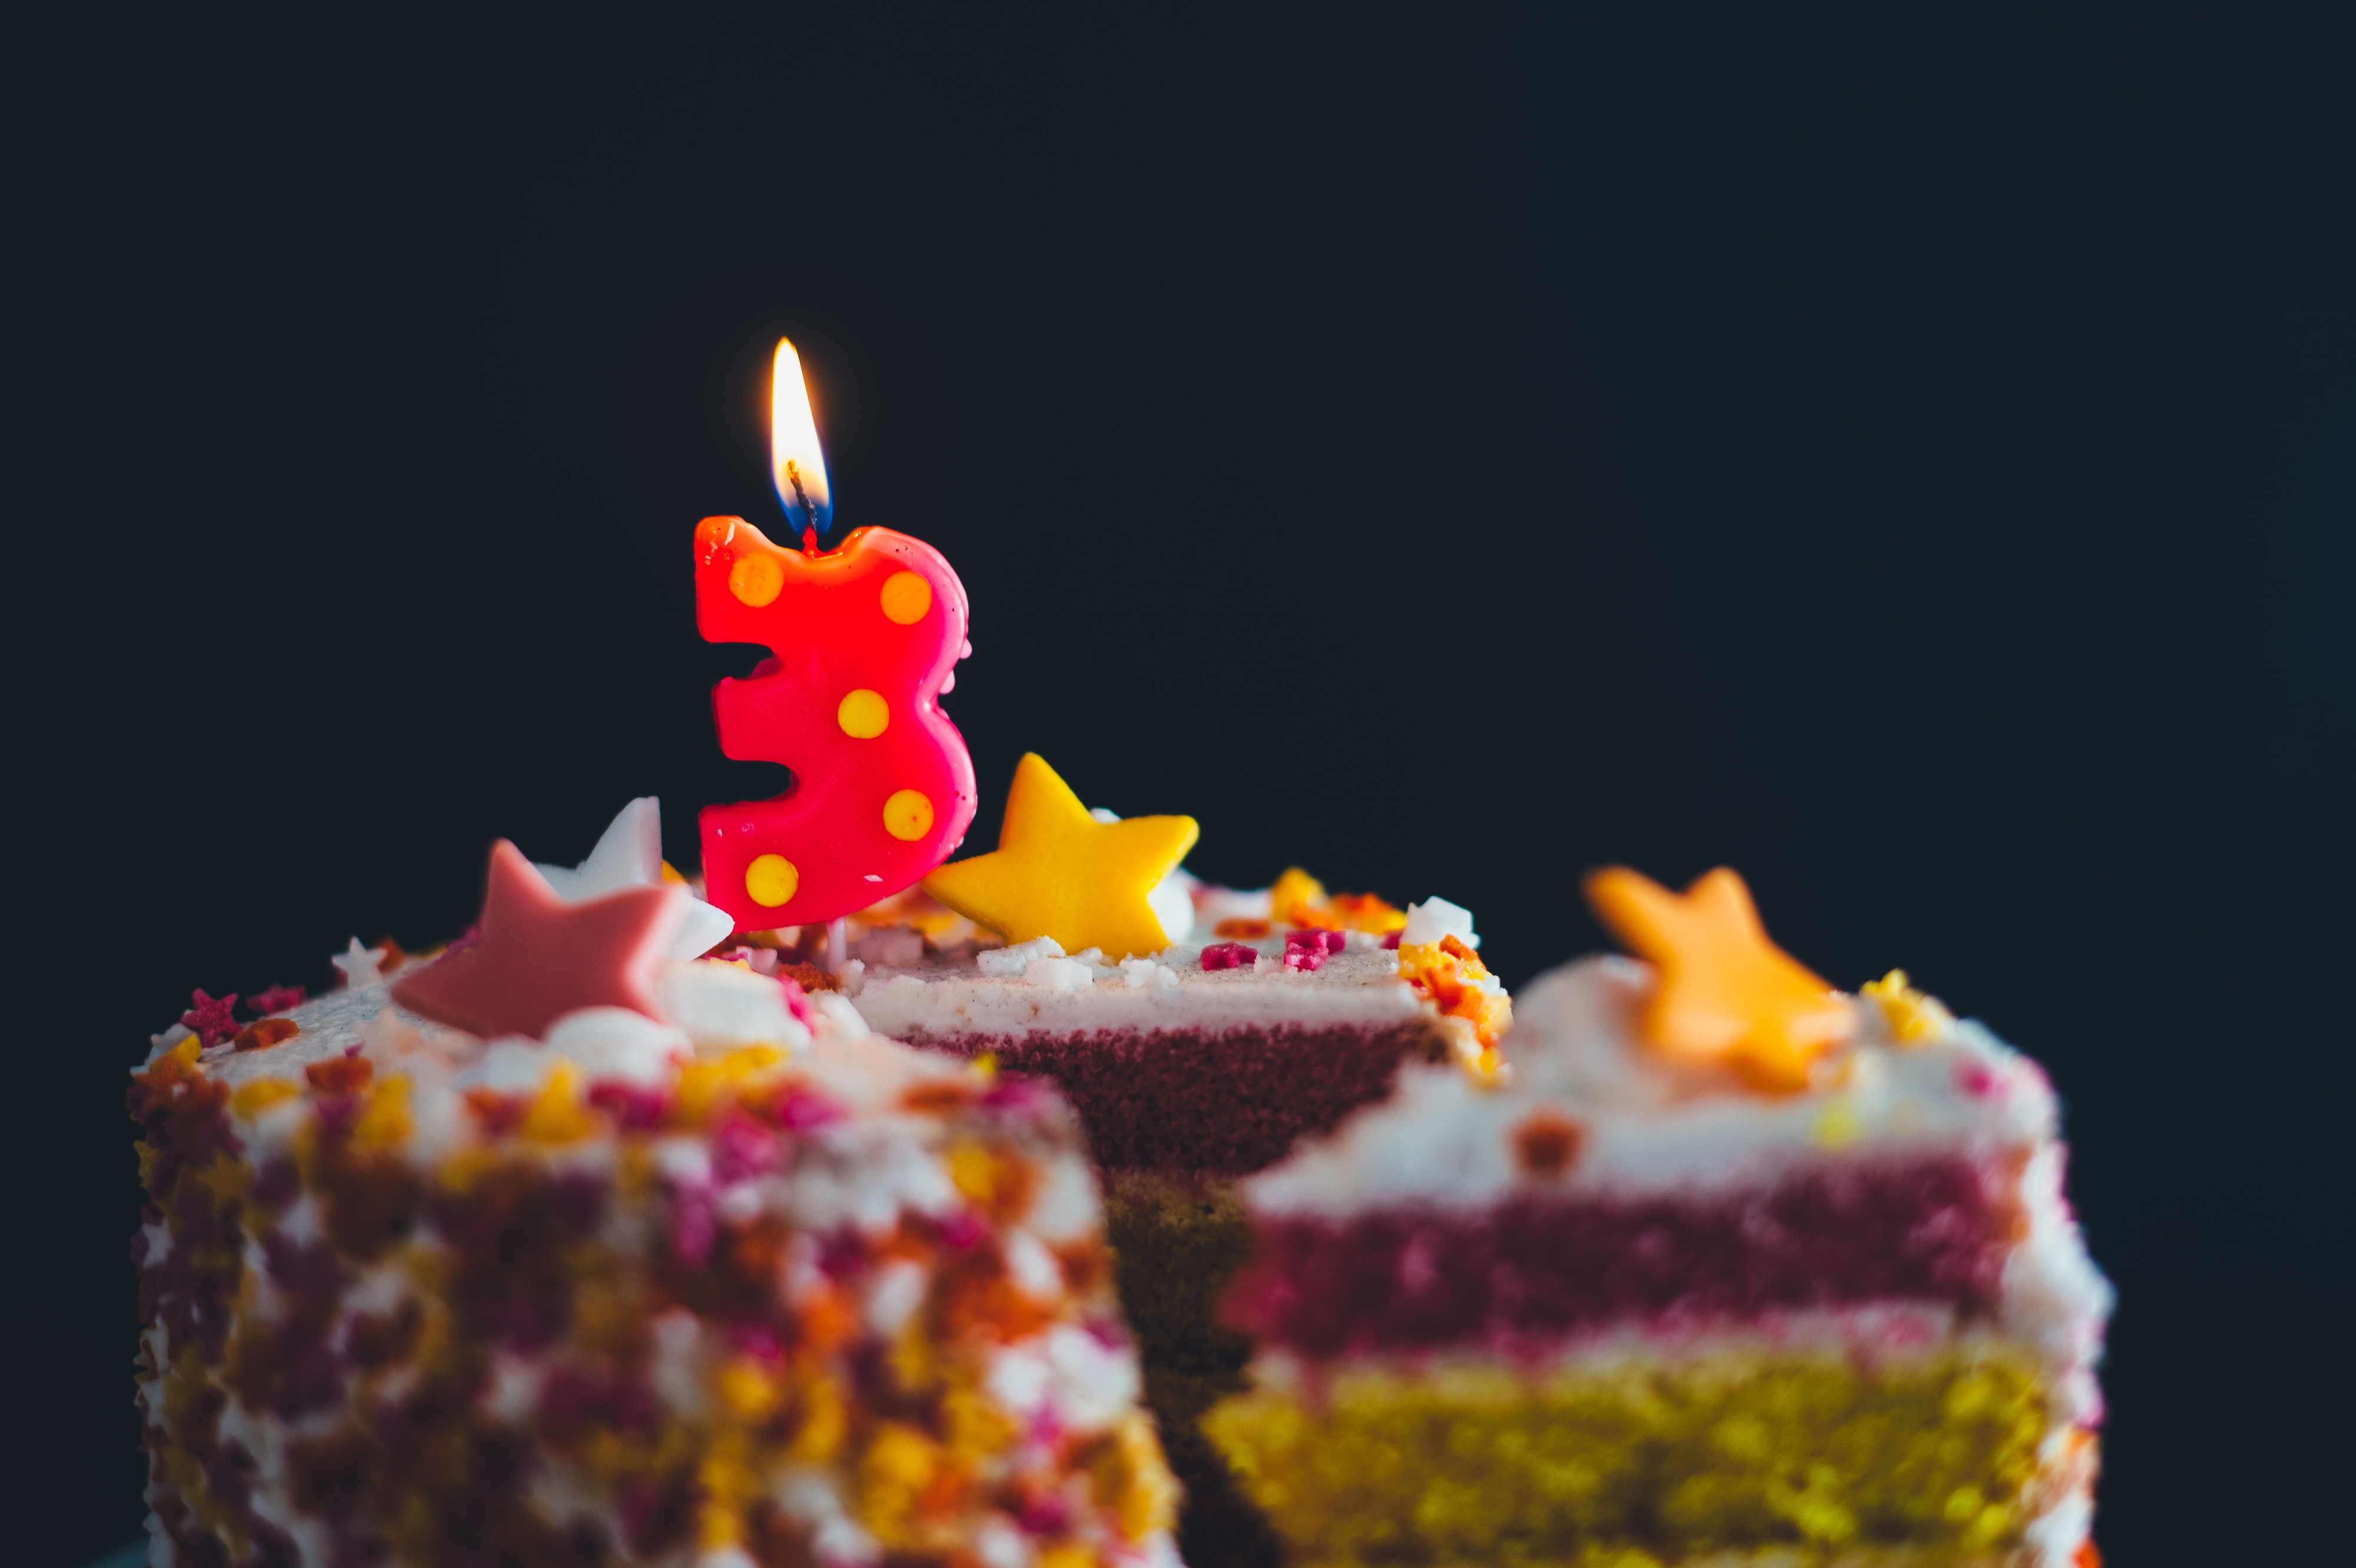 A close-up macro shot of a sliced birthday cake with a number 3 candle burning on top